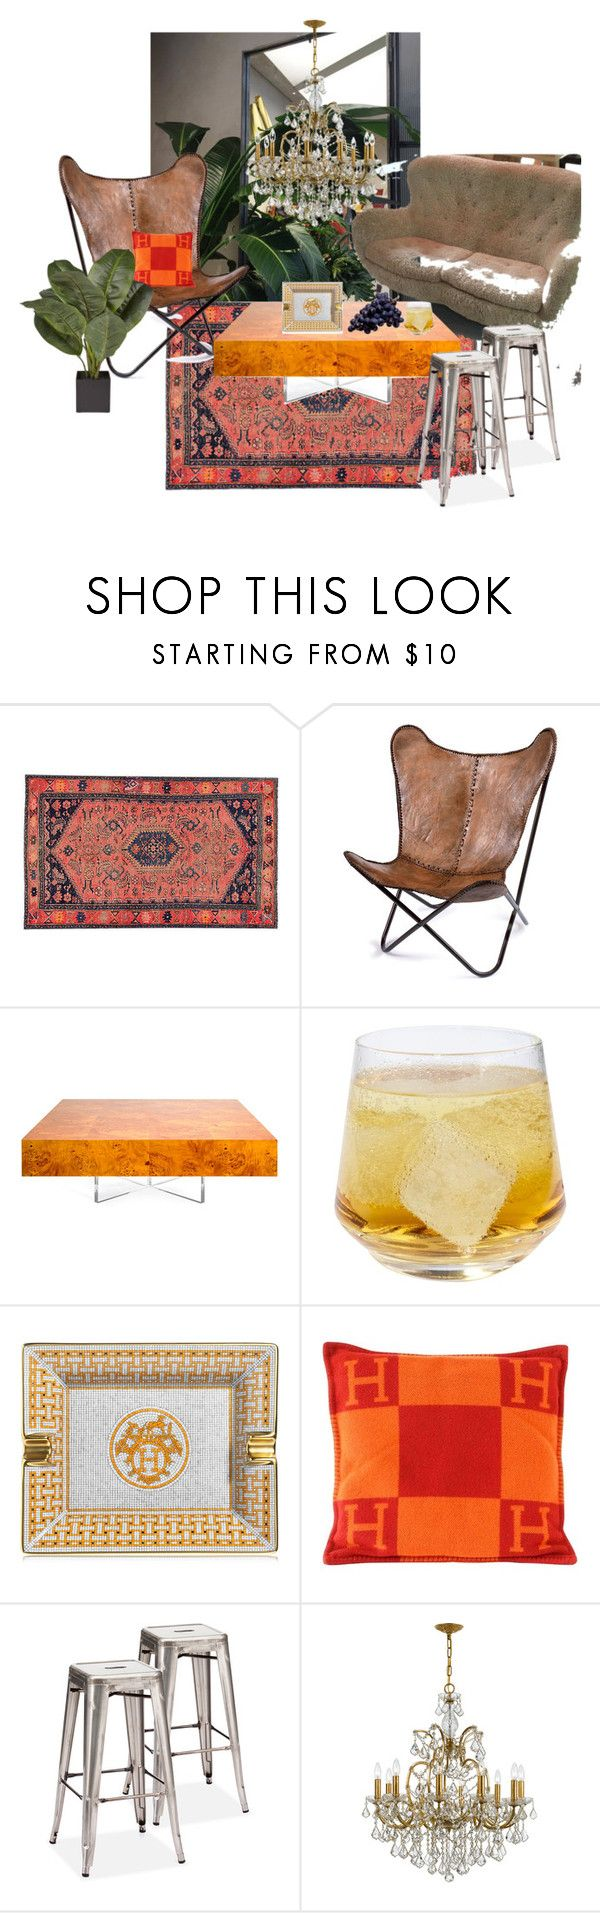 """""""western europe"""" by dalles ❤ liked on Polyvore featuring interior, interiors, interior design, home, home decor, interior decorating, Apadana, Nordal, Jonathan Adler and Schott Zwiesel"""